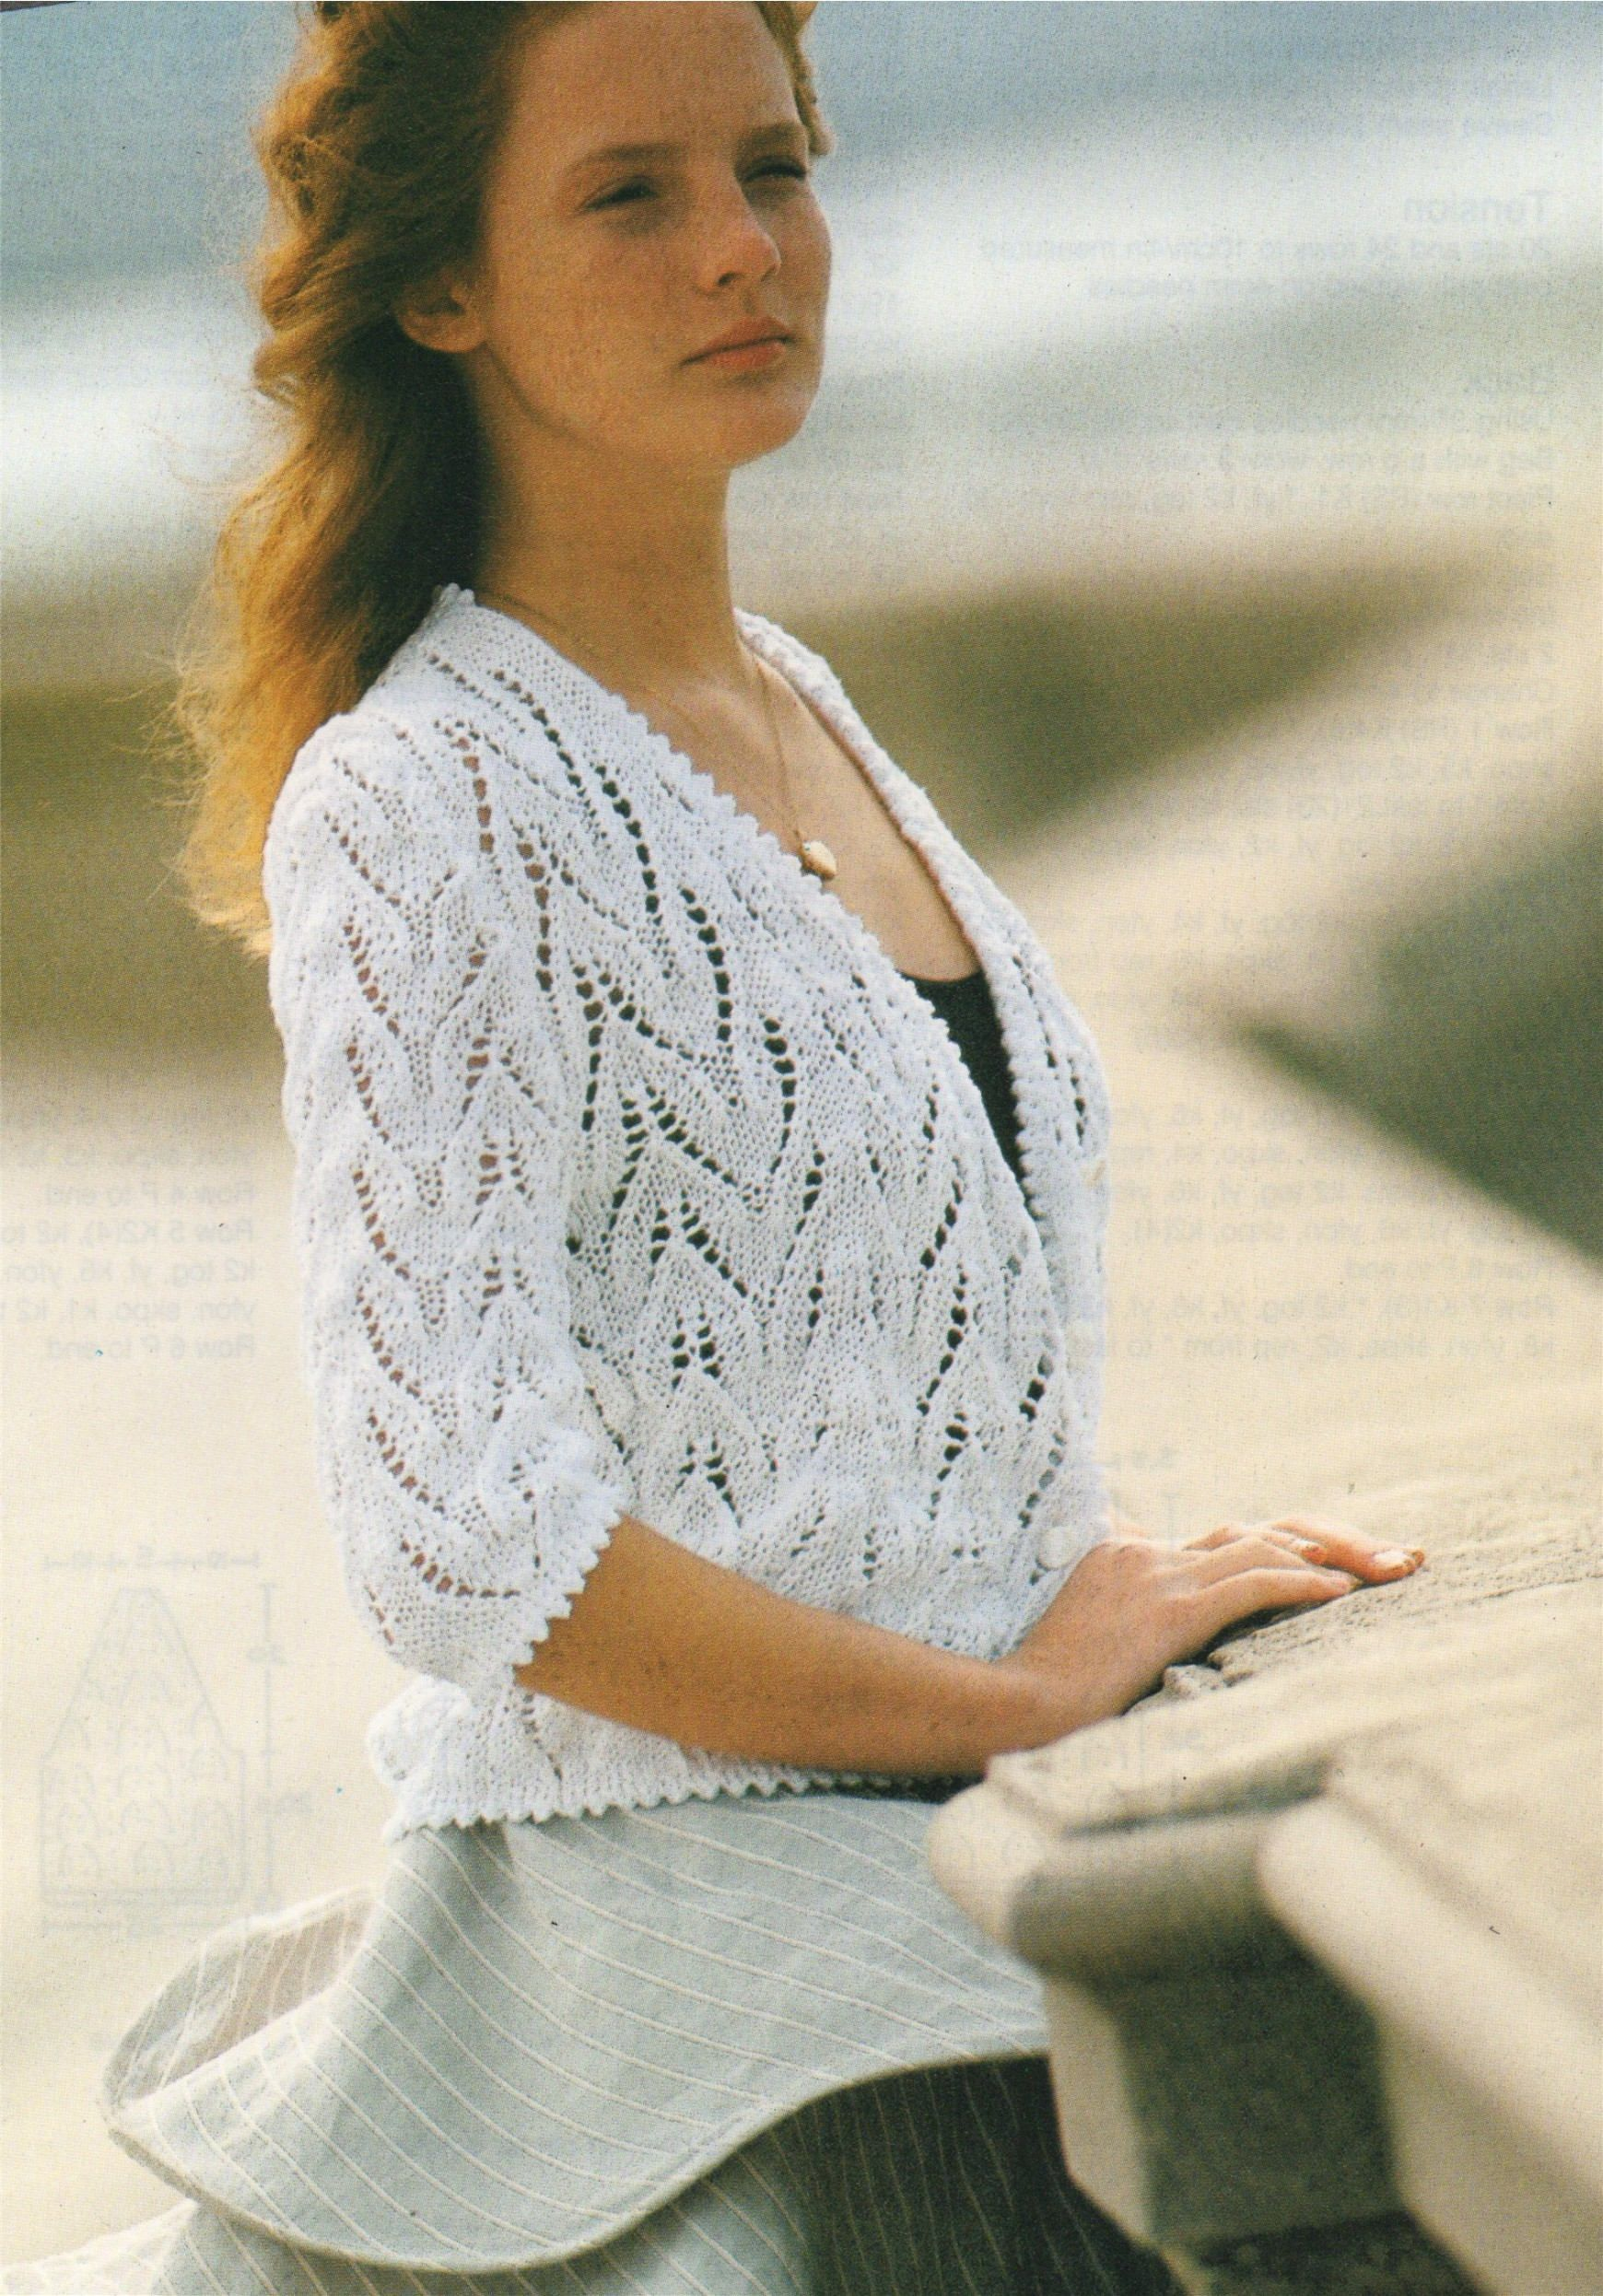 Womens lace cardigan pdf knitting pattern ladies 34 and 36 inch womens lace cardigan pdf knitting pattern ladies 34 and 36 inch chest picot edging cotton dk summer cardi instant download bankloansurffo Image collections